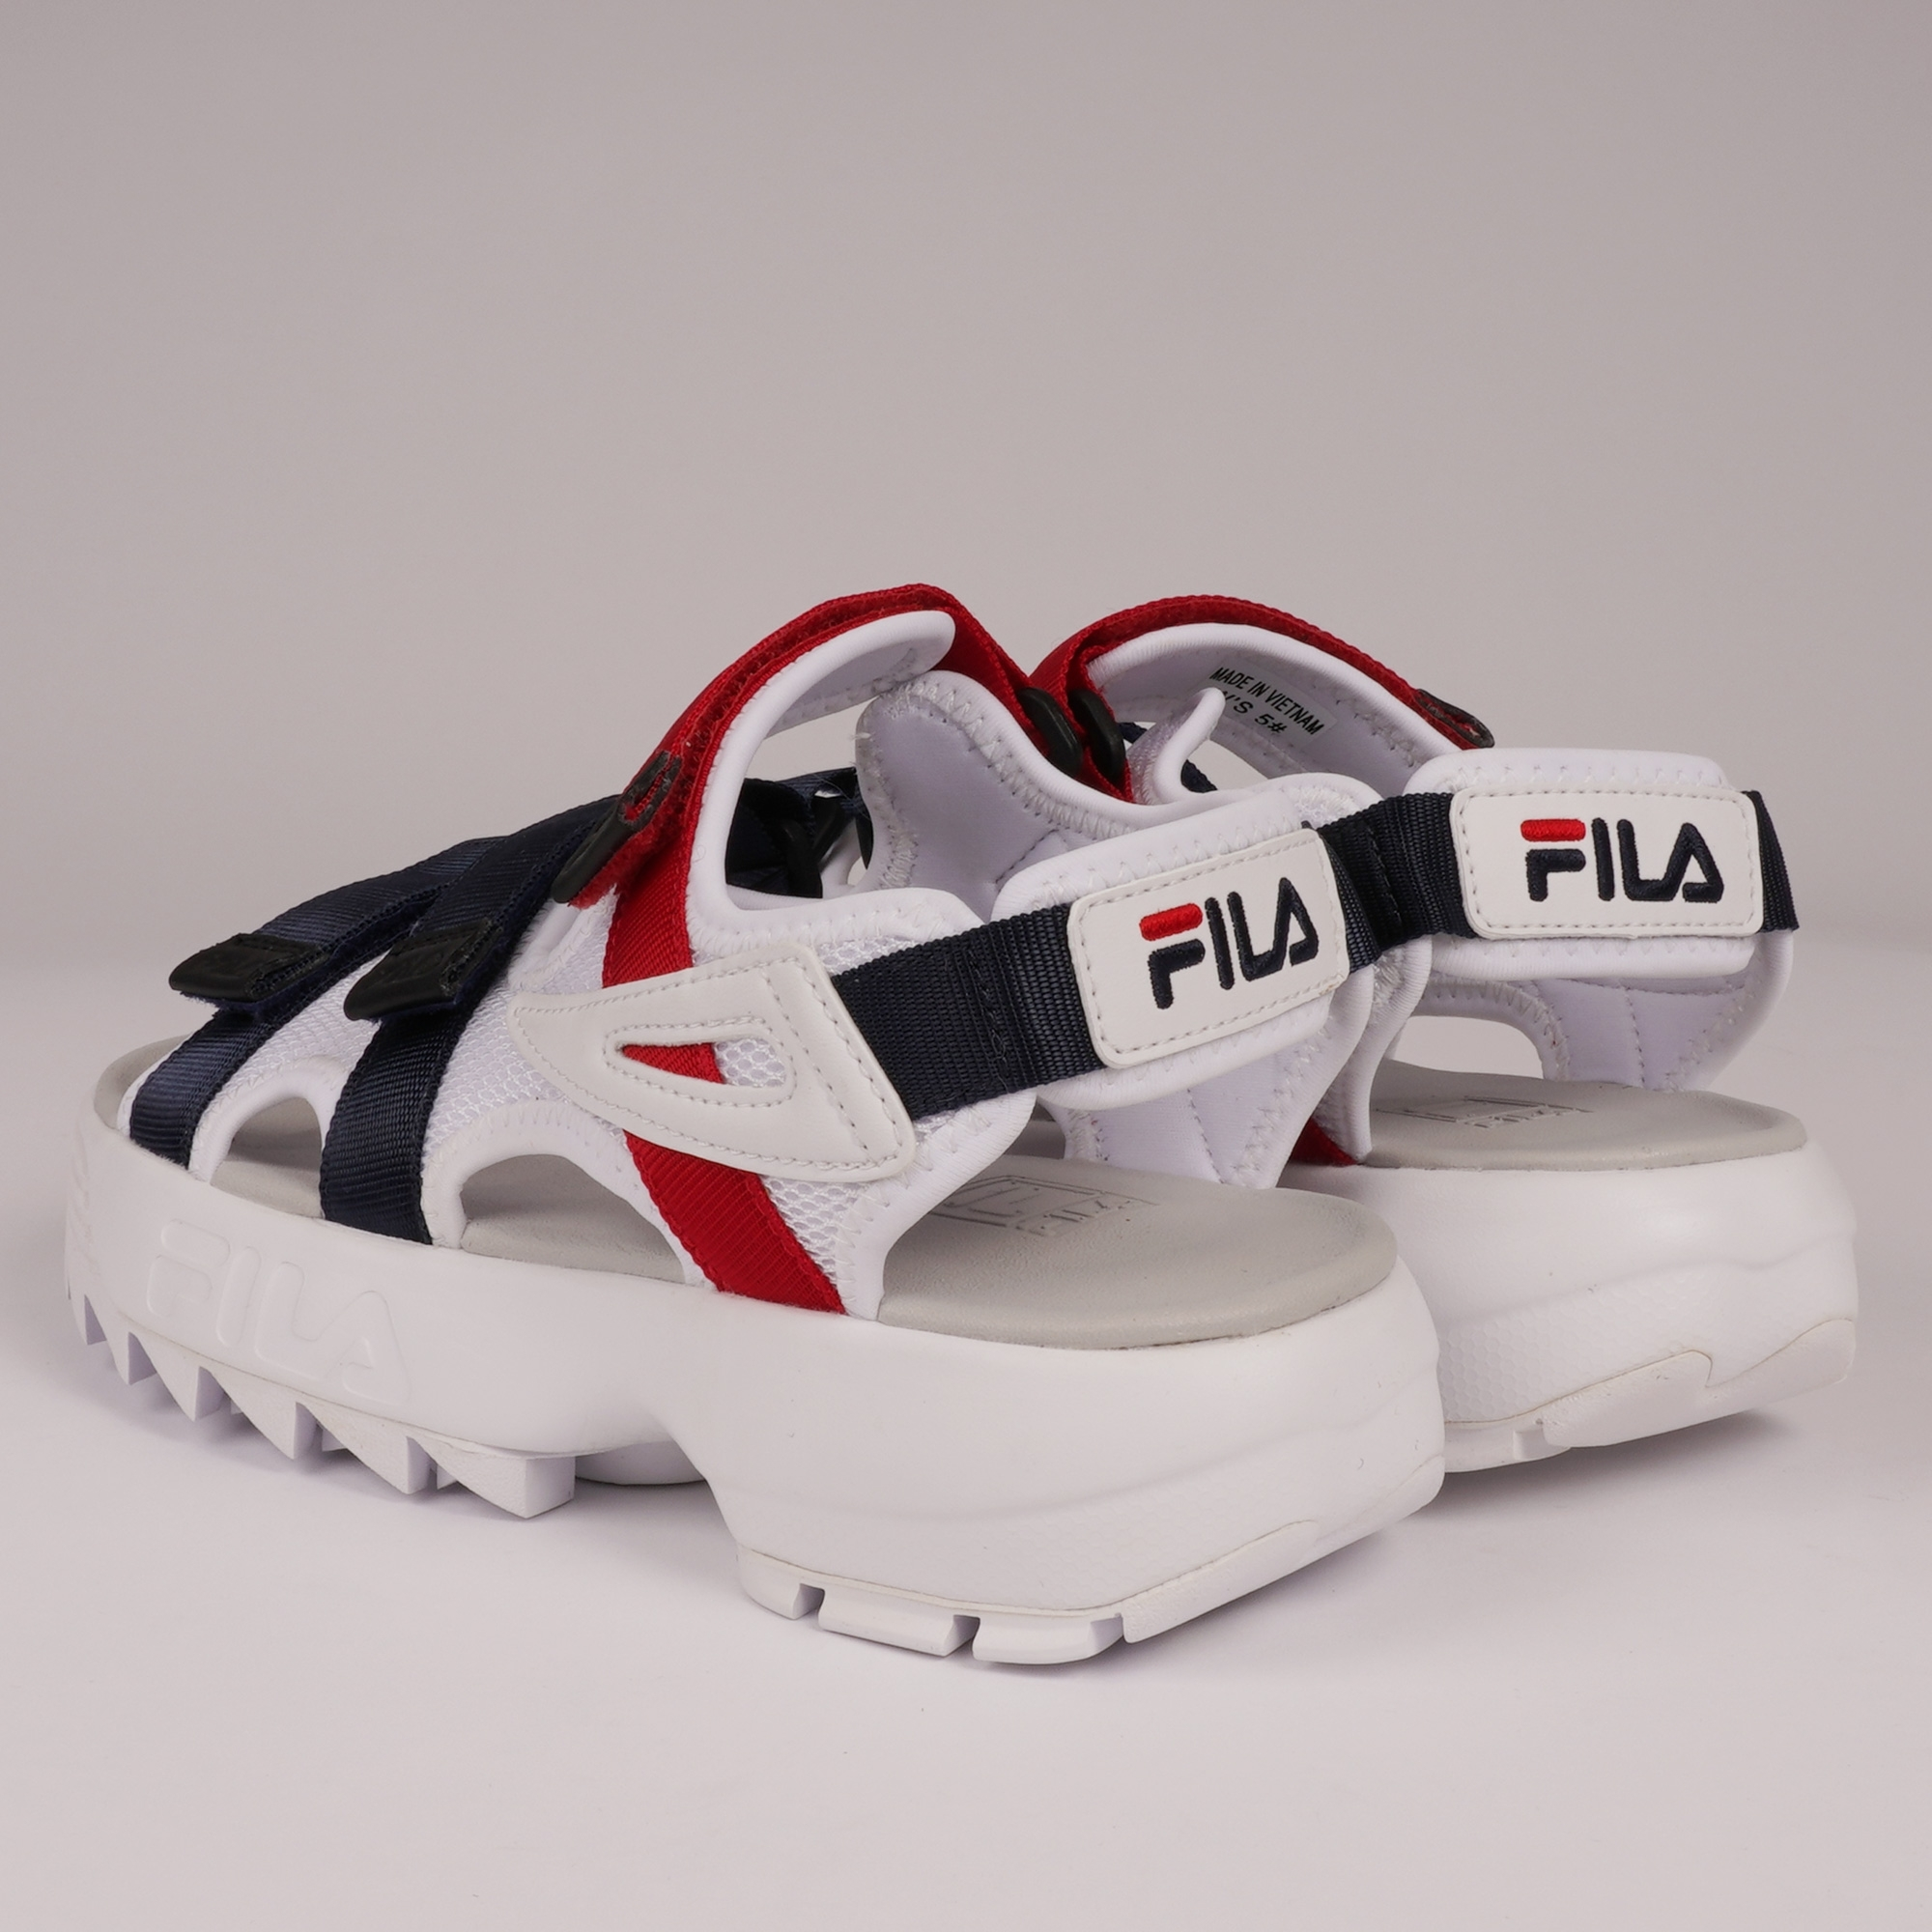 915134f1ead Fila Womens Disruptor Sandals